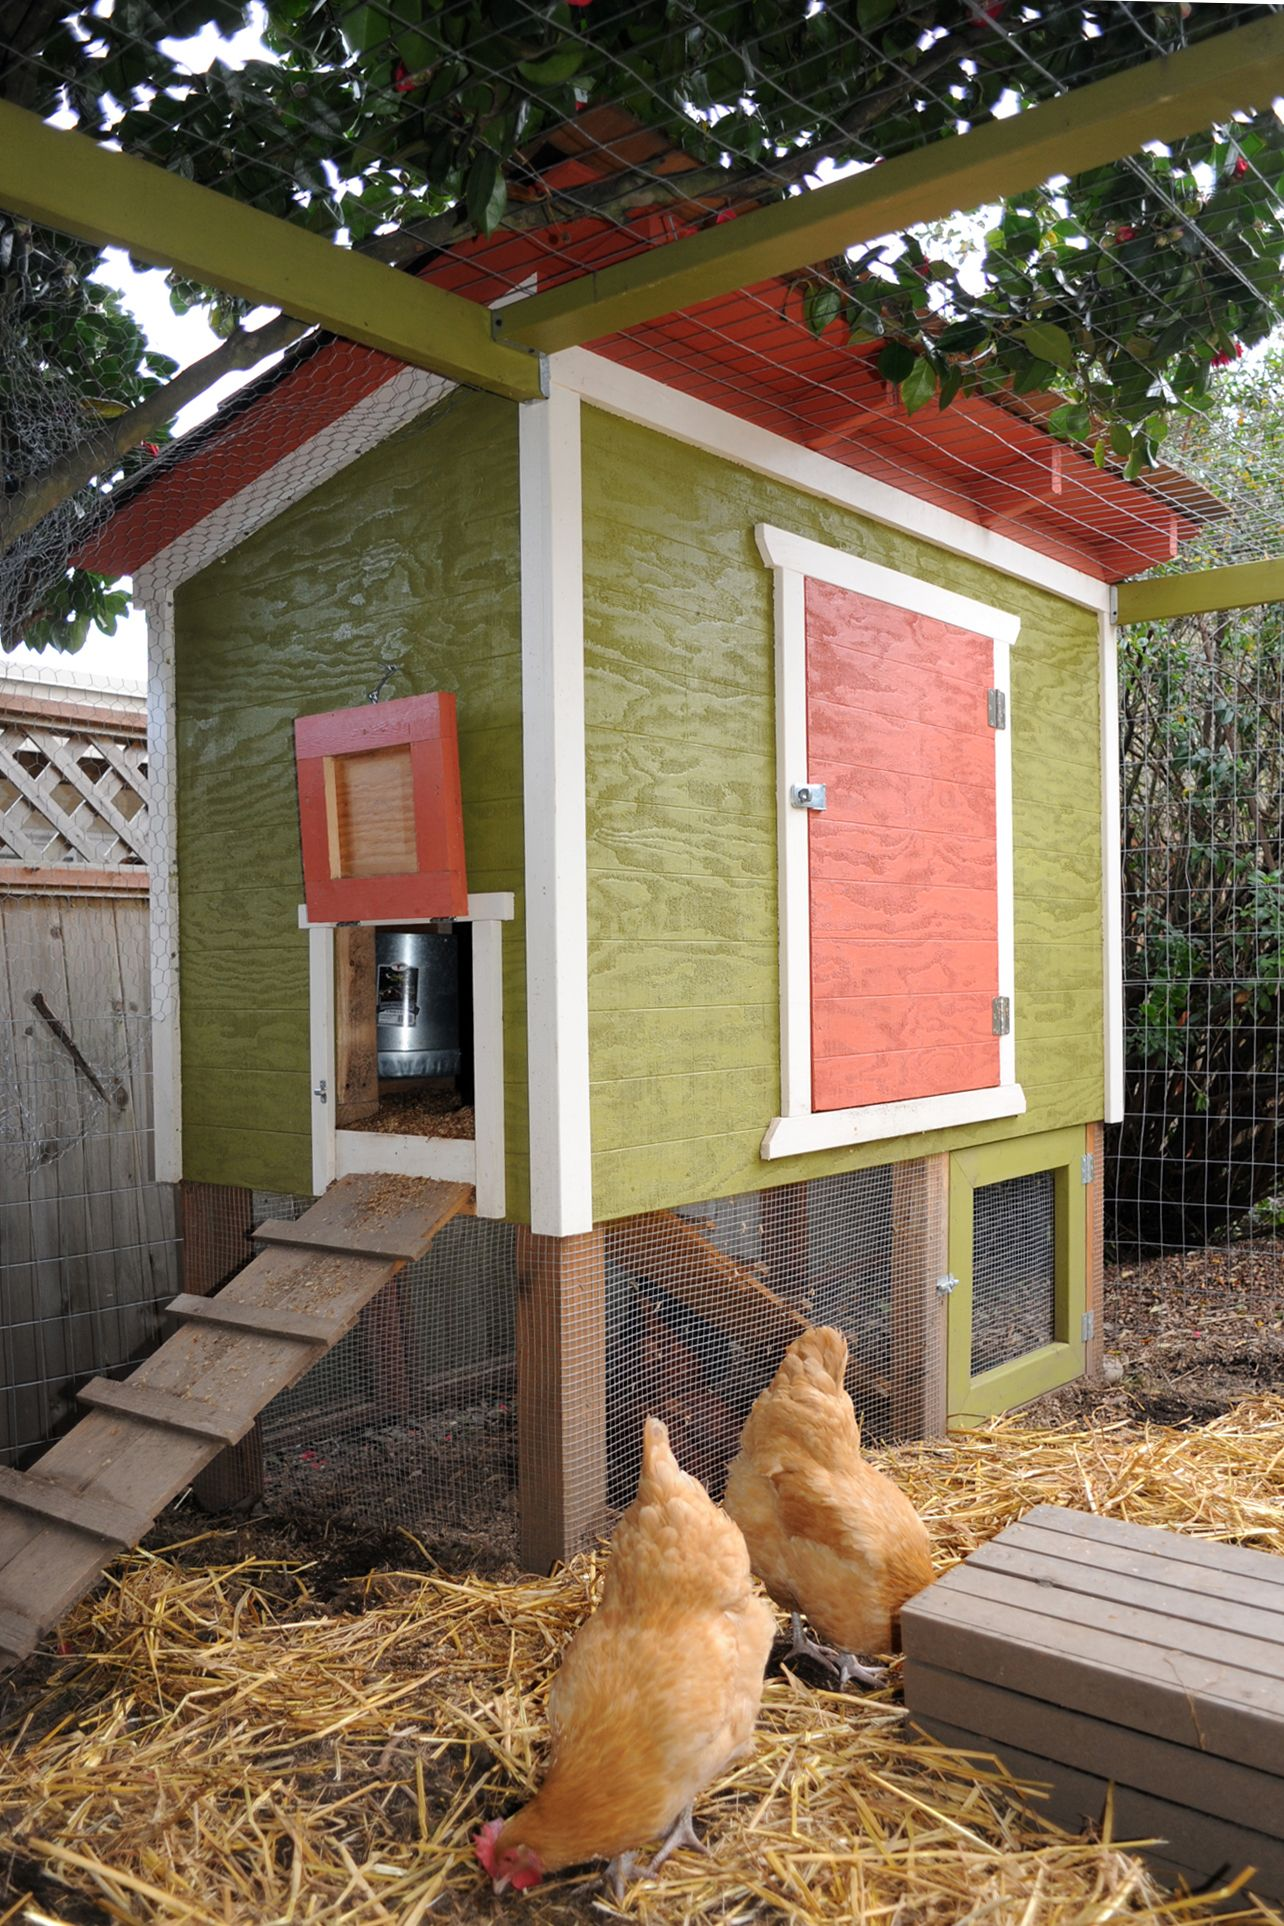 24 Diy Chicken Coops You Need In Your Backyard Coop Plans Diagram Chickens Roosters Pinterest